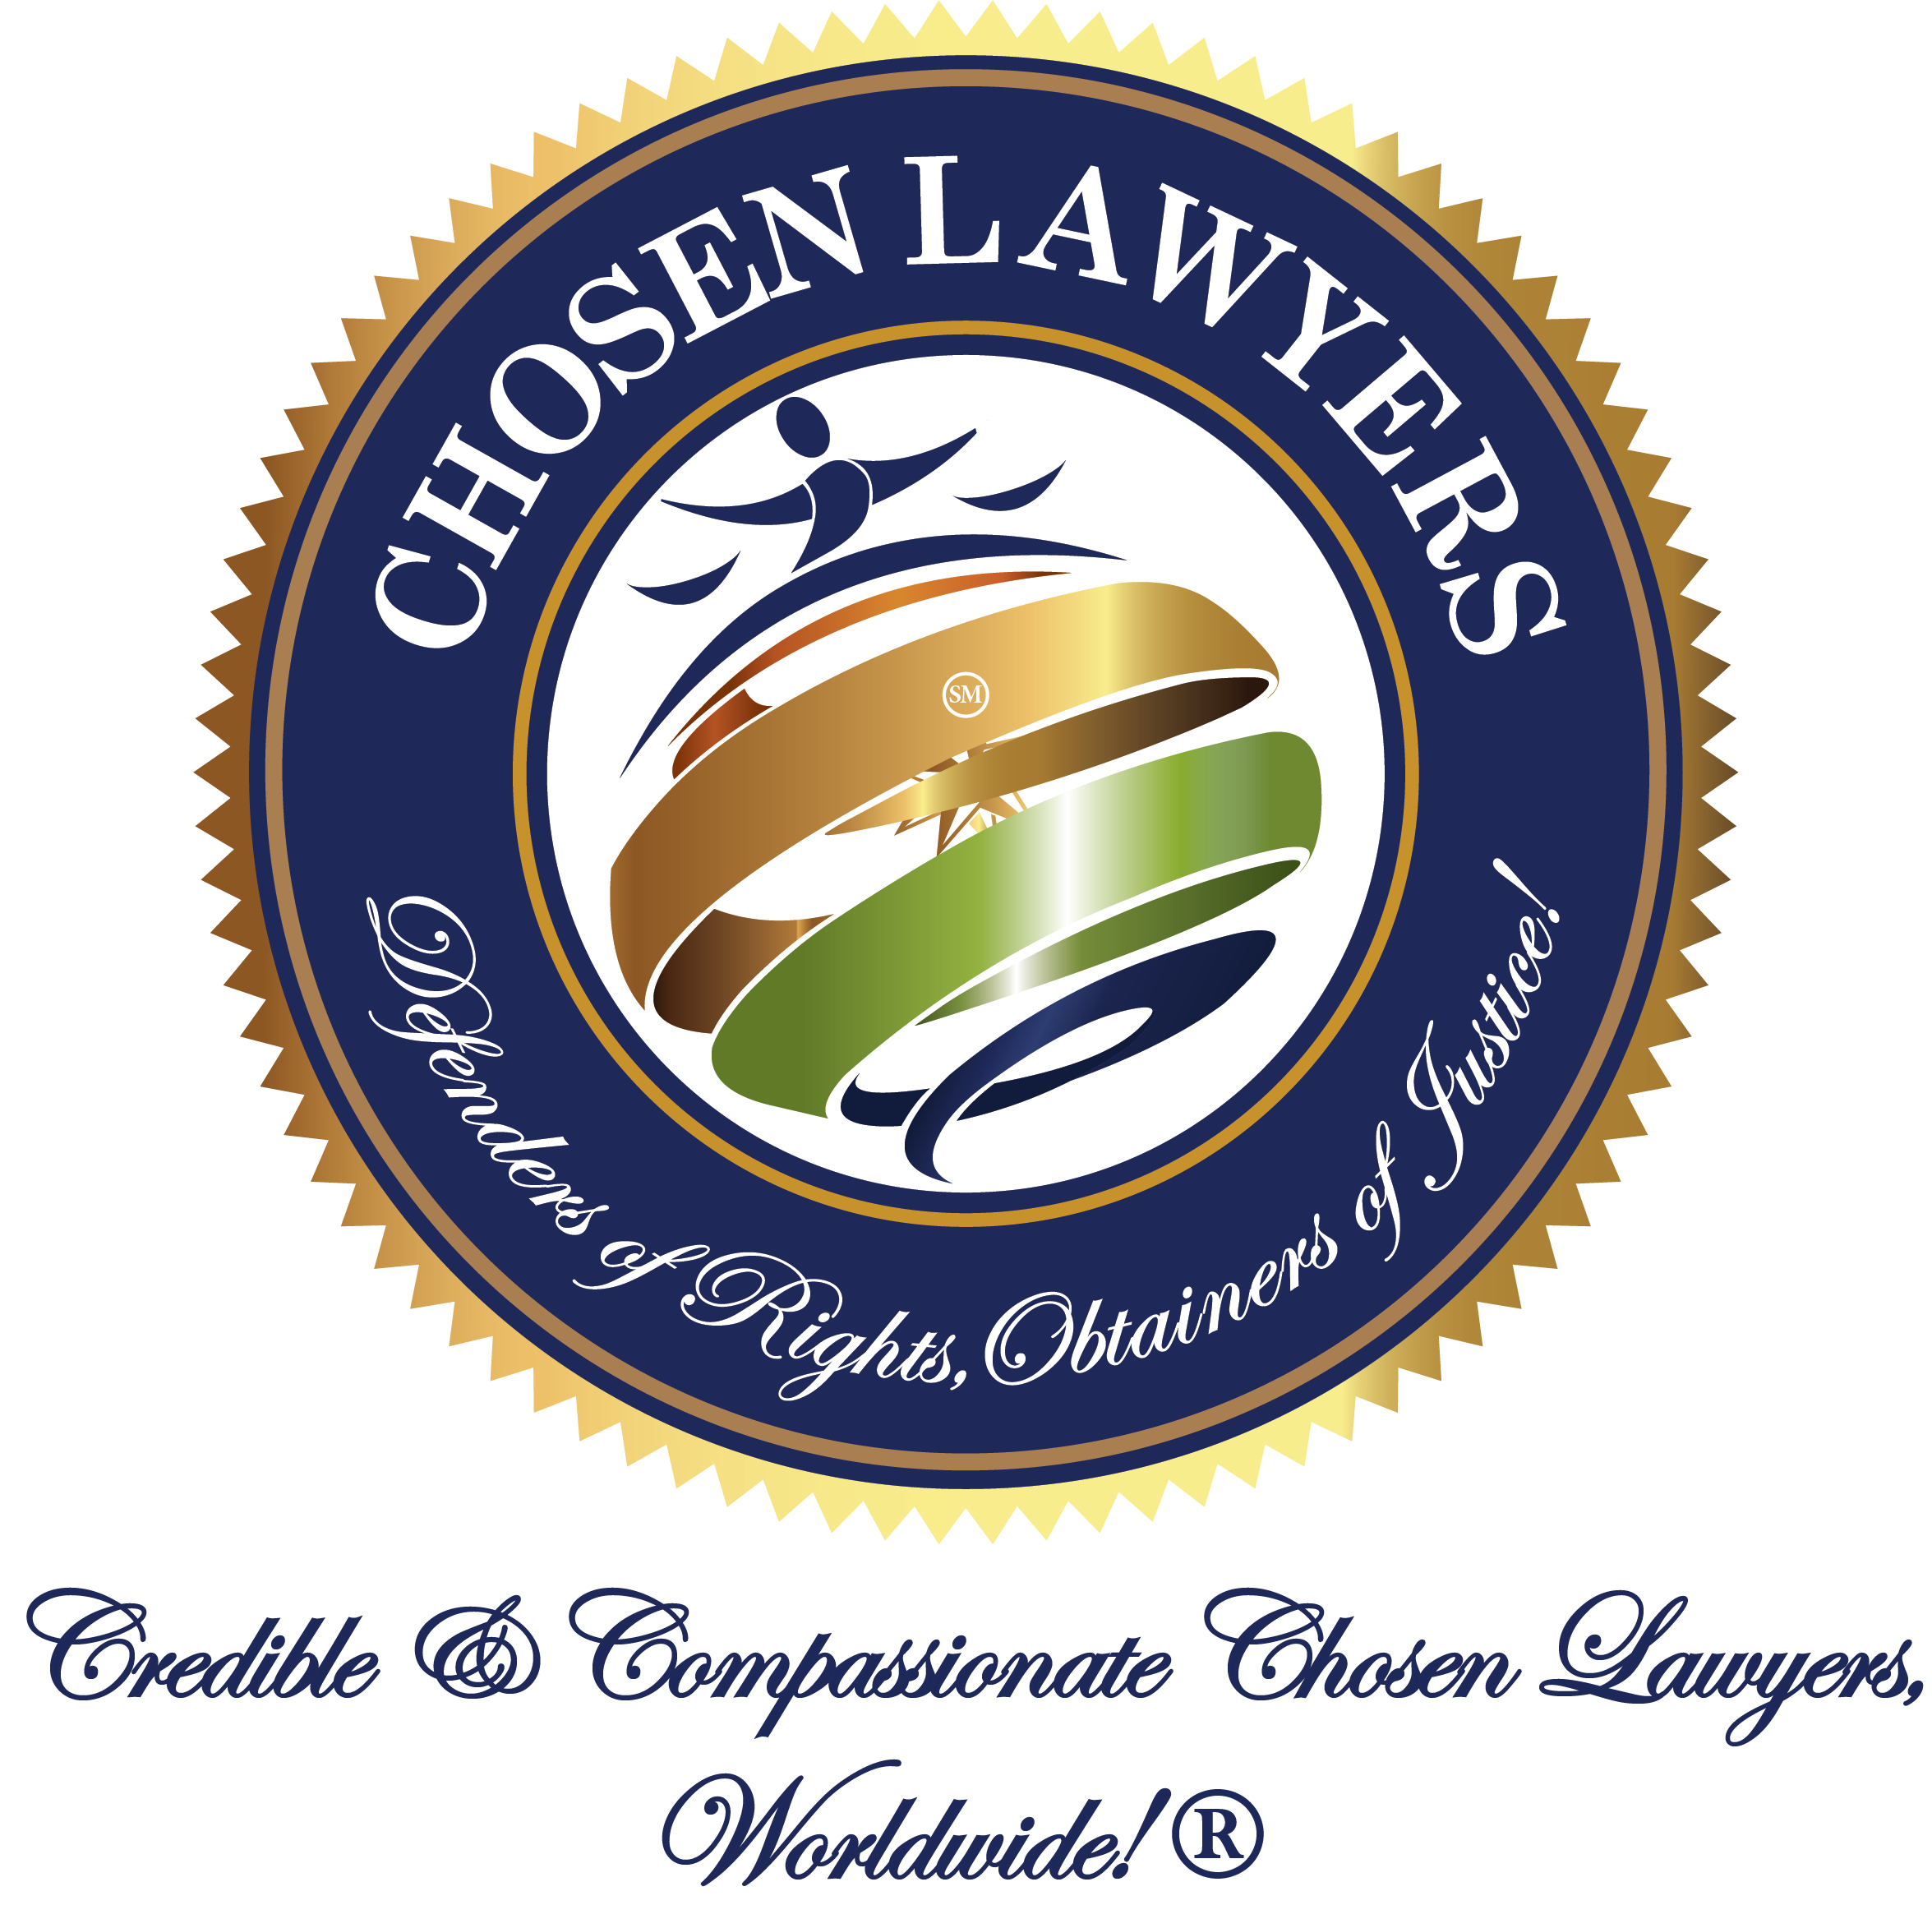 Are you a Chosen Lawyer? Chosen Lawyers